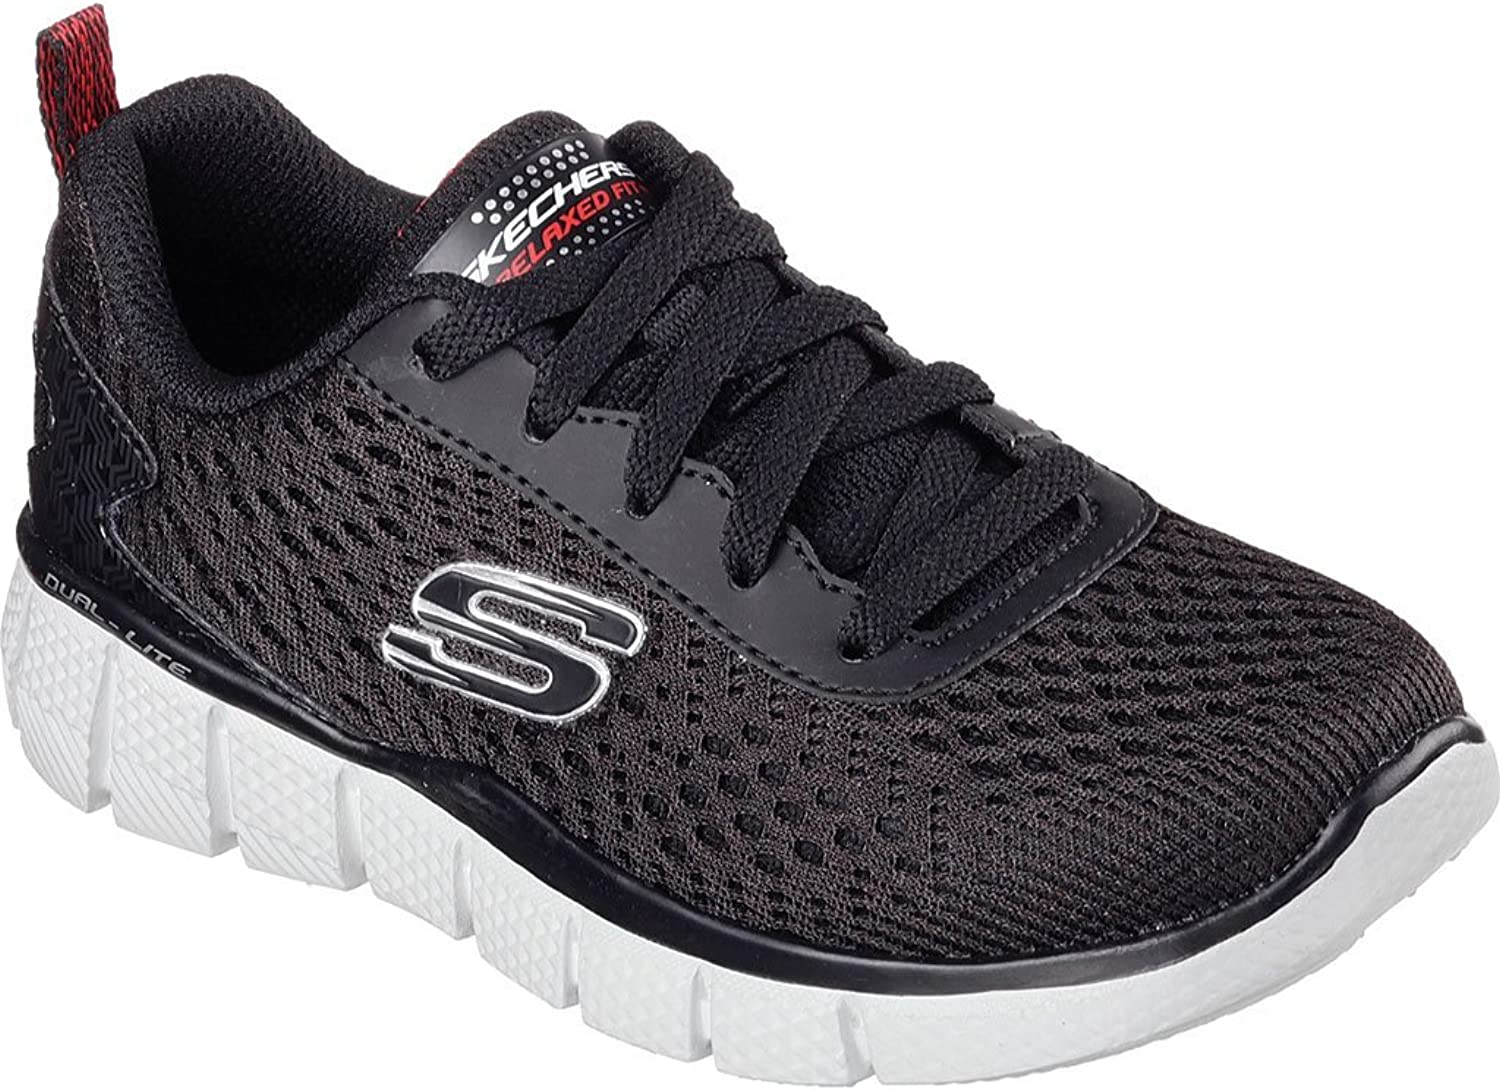 Skechers97371L-BKRD Skechers97371L-BKRD Skechers97371L-BKRD - Equalizer 2.0 Settle The Score Jungen B01G29XBFI  Einfaches Leben 40f21f